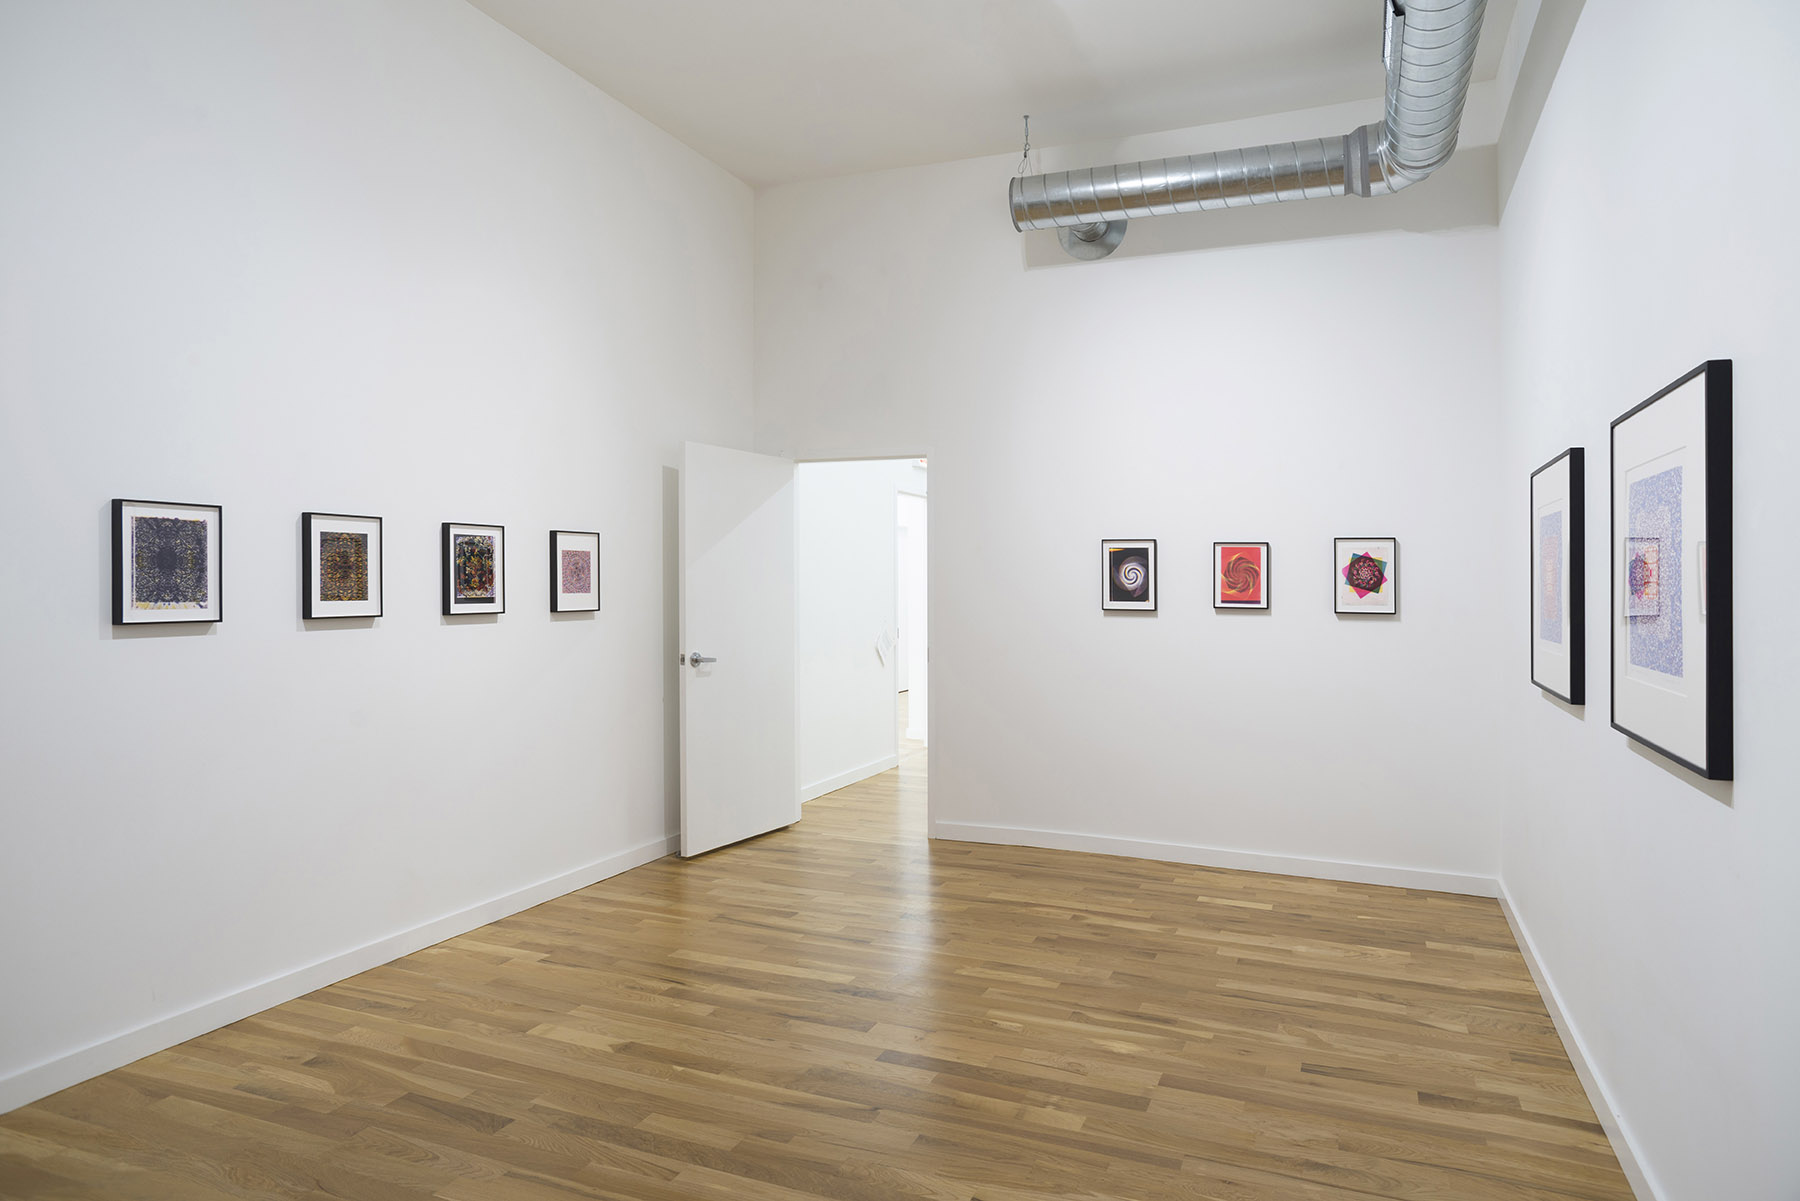 VanDerBeek_Installation view at DOCUMENT03_Web.jpg